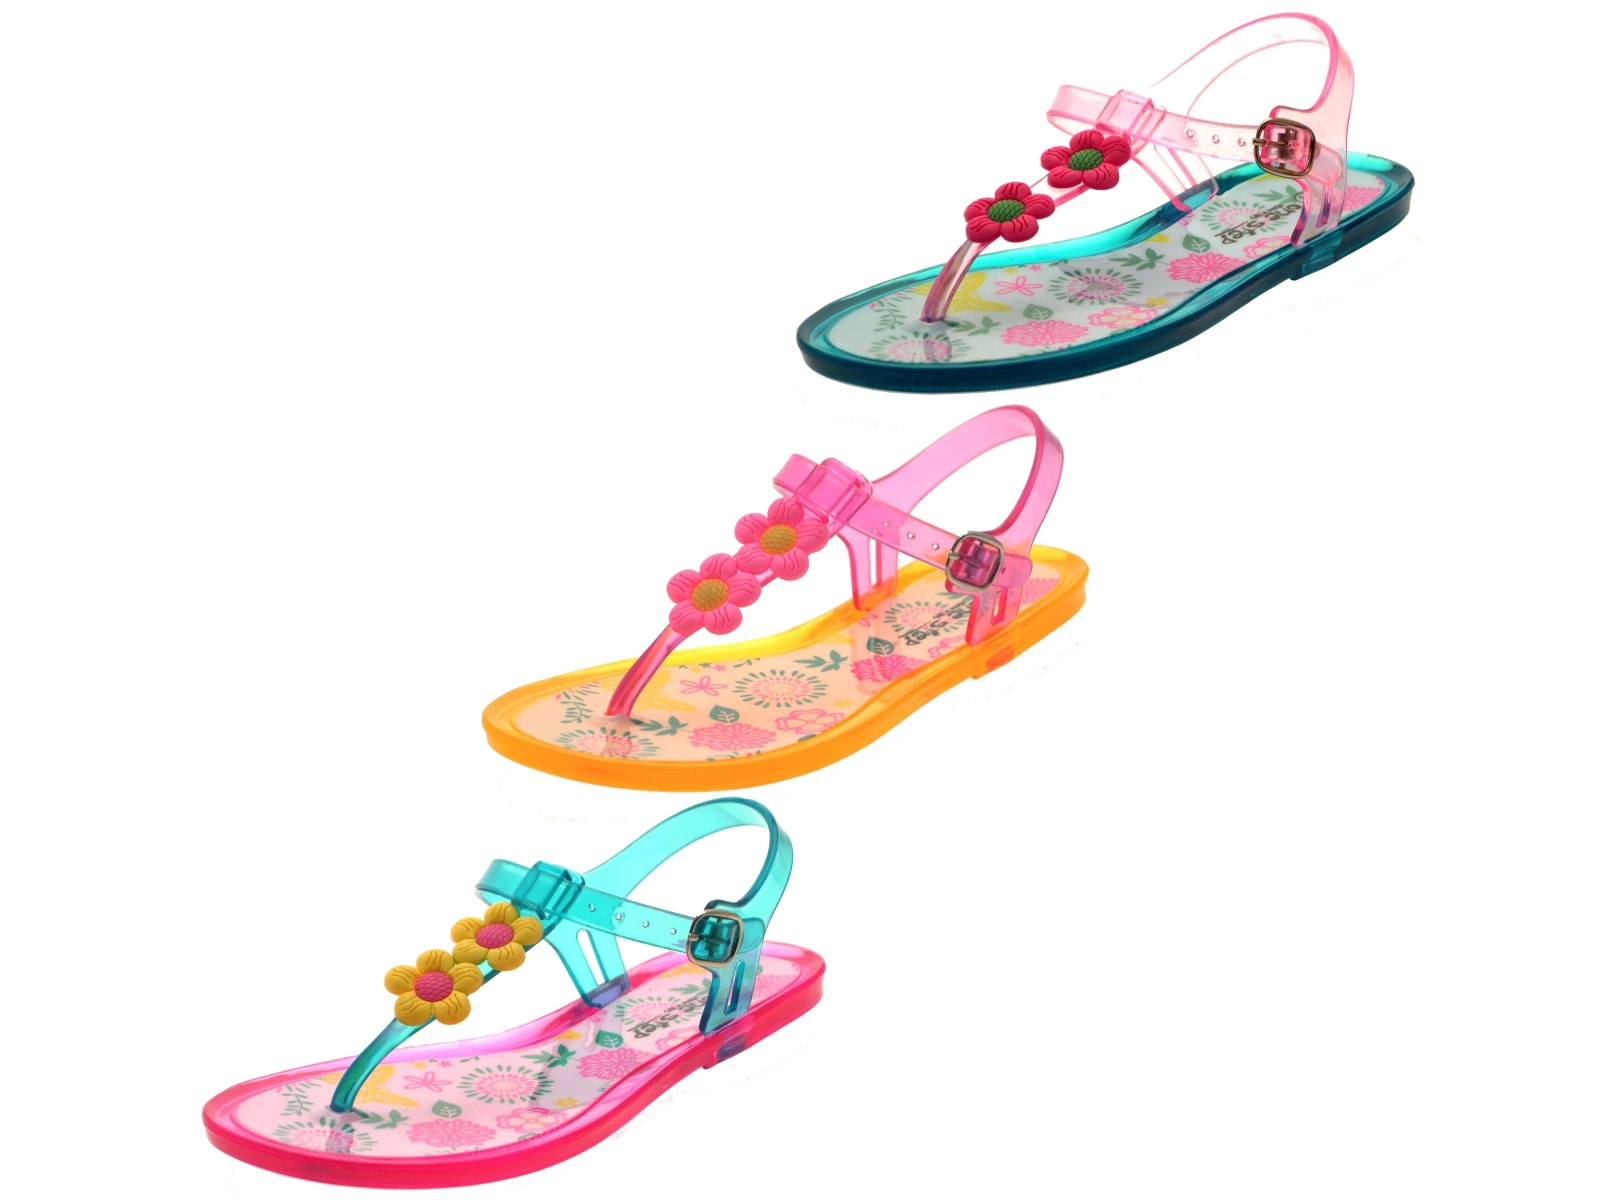 6b856d38bb8 Shop the sweetest selection of jelly shoes from some of your favourite  designers. Made with